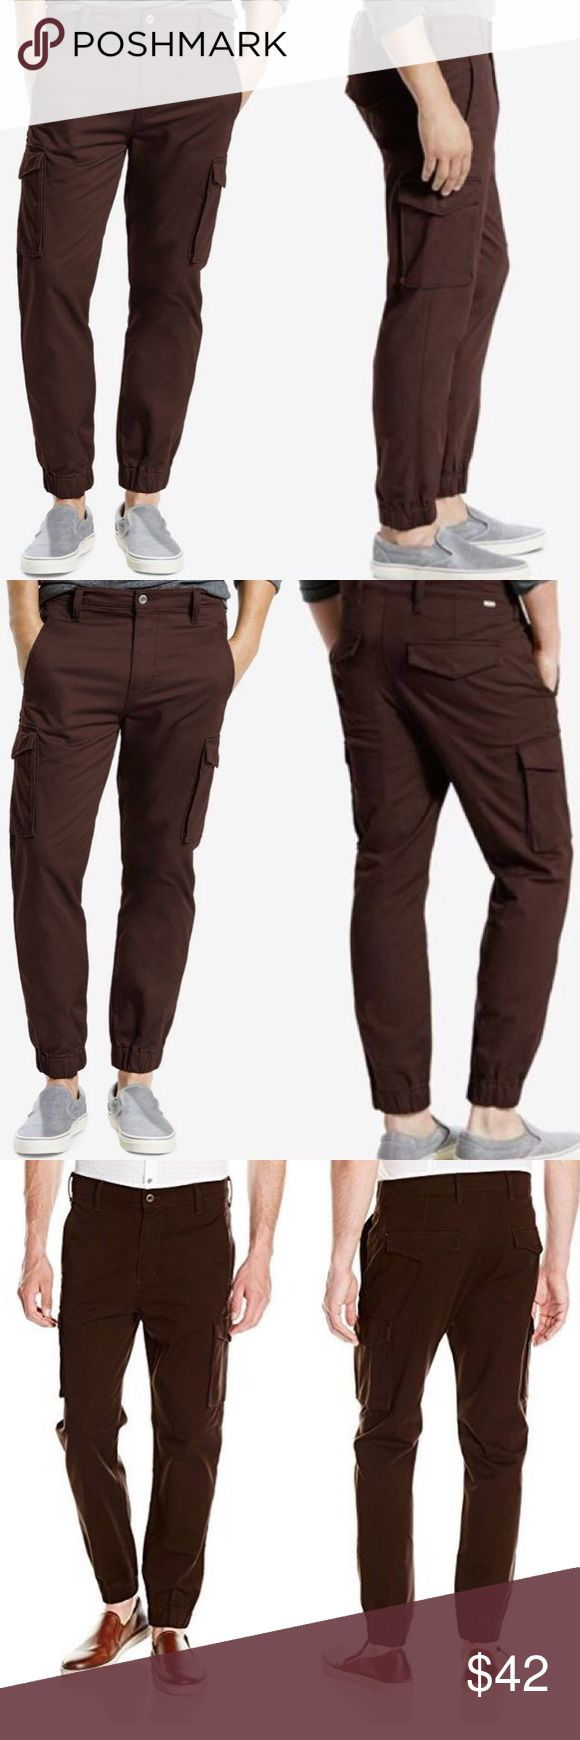 NWT LEVI'S Banded Cargo Pants joggers LEVI'S Khaki jogger pants.  31WX32L Levi's Pants Cargo